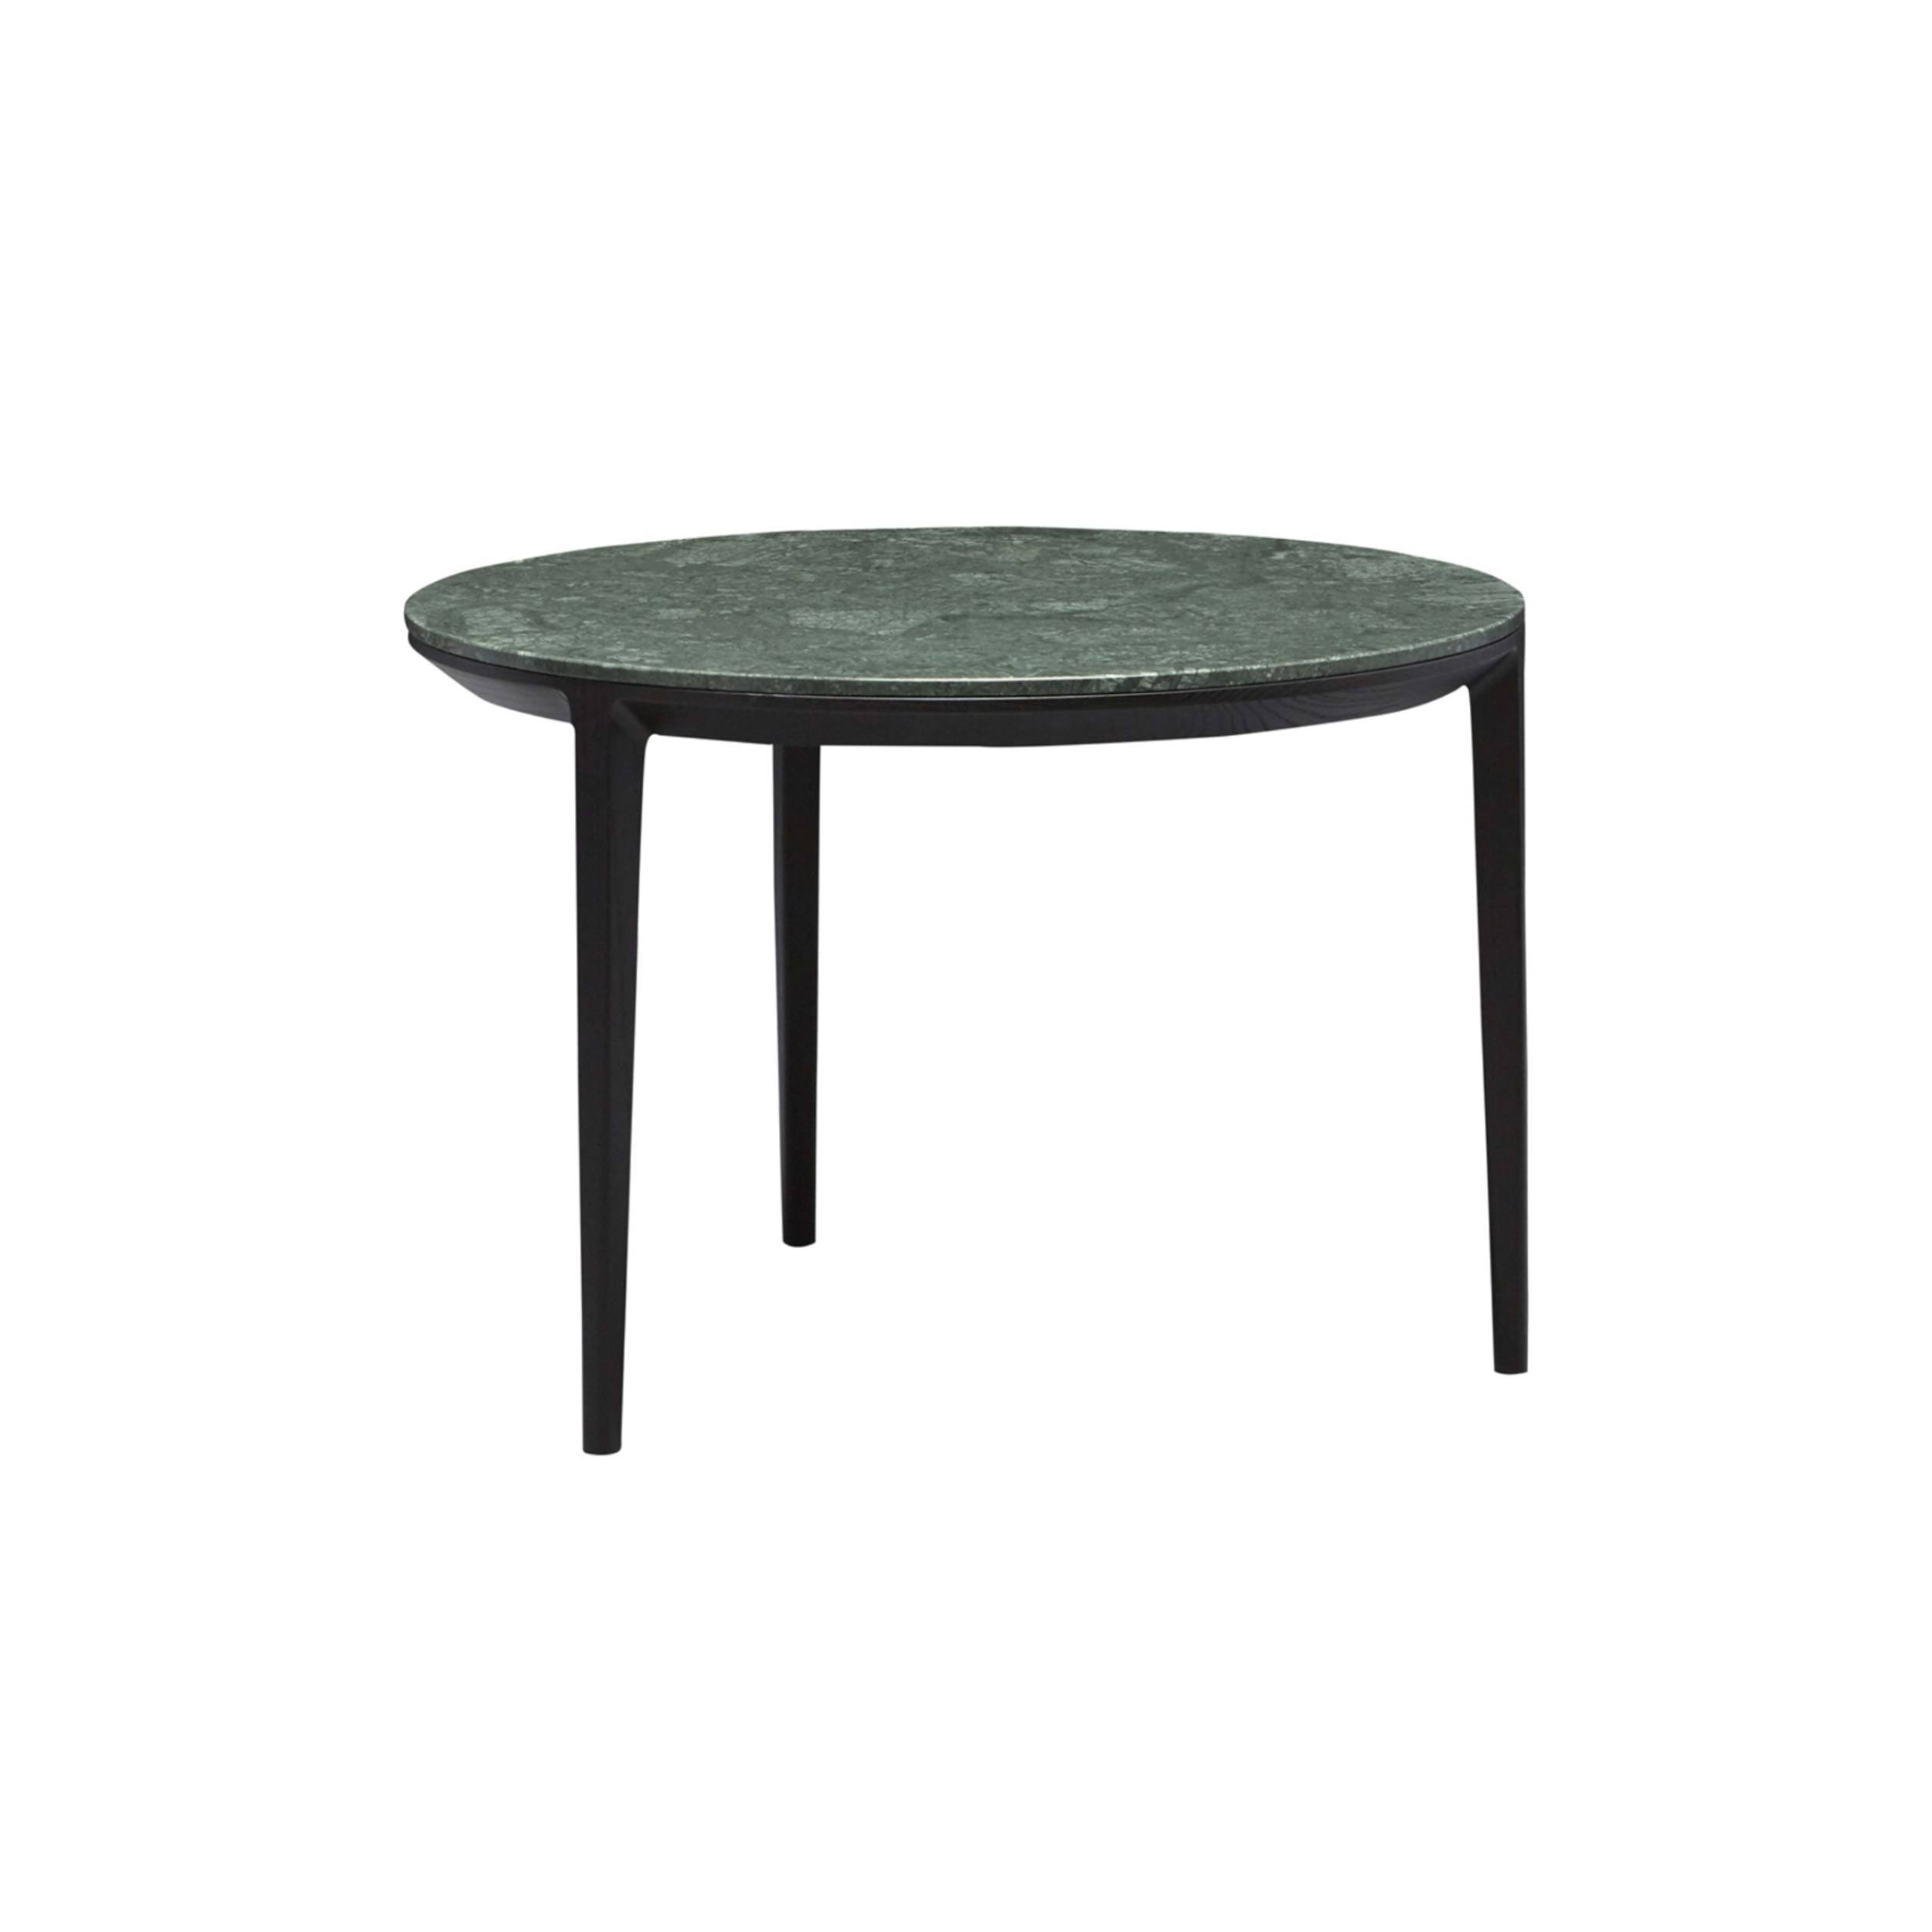 Etoile Side + Coffee Table: Small + Carbon Stained Ash + Green Marble